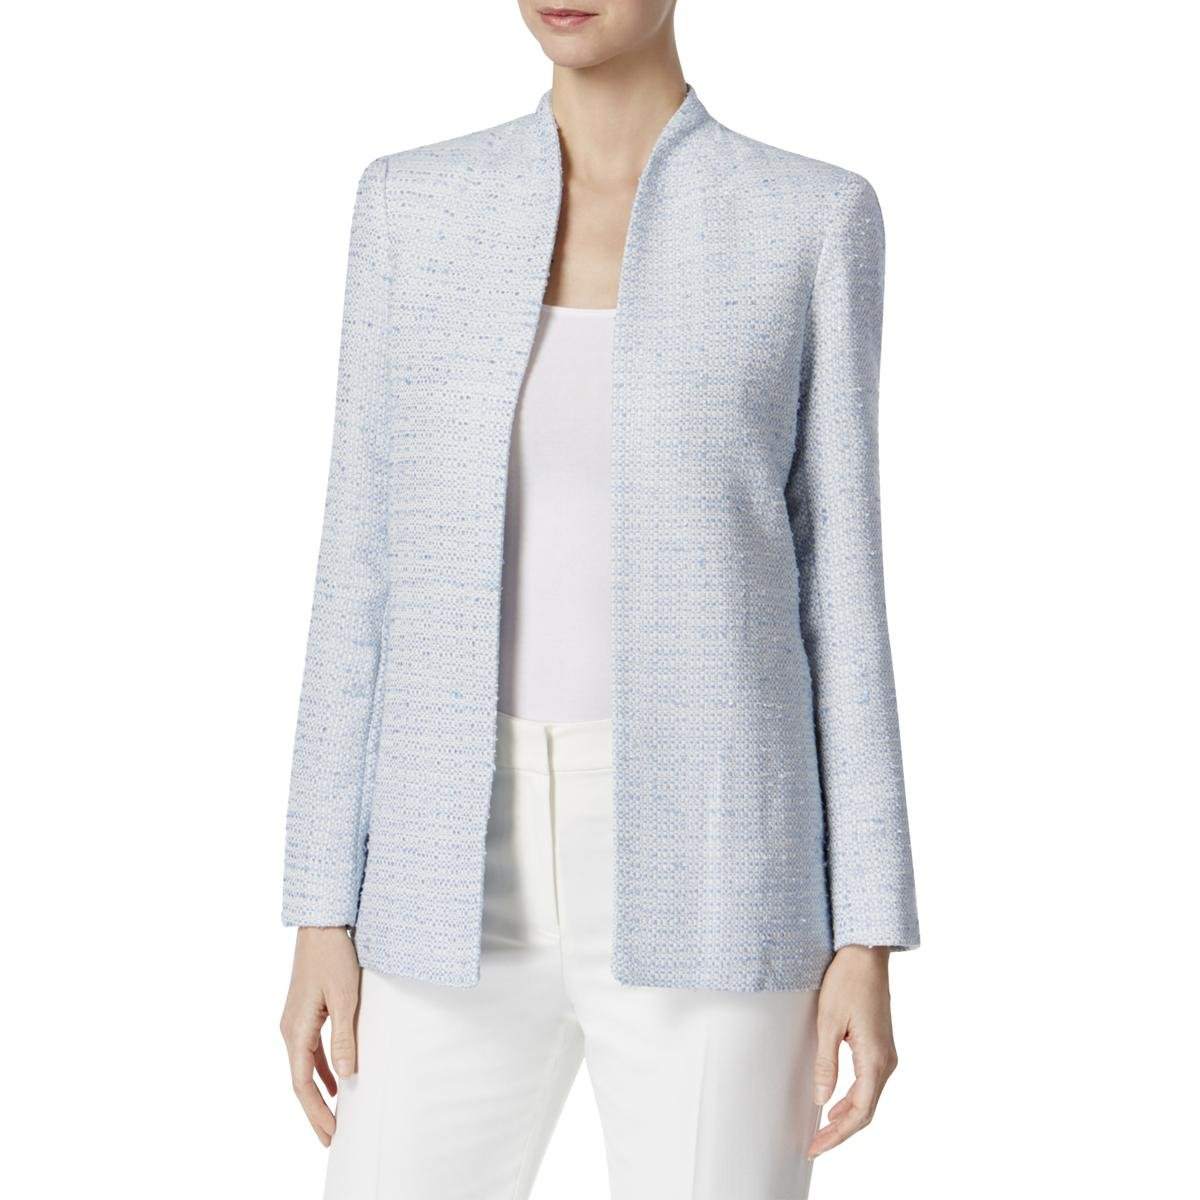 Calvin Klein Women's Long Open Tweed Jacket, Serene, 12